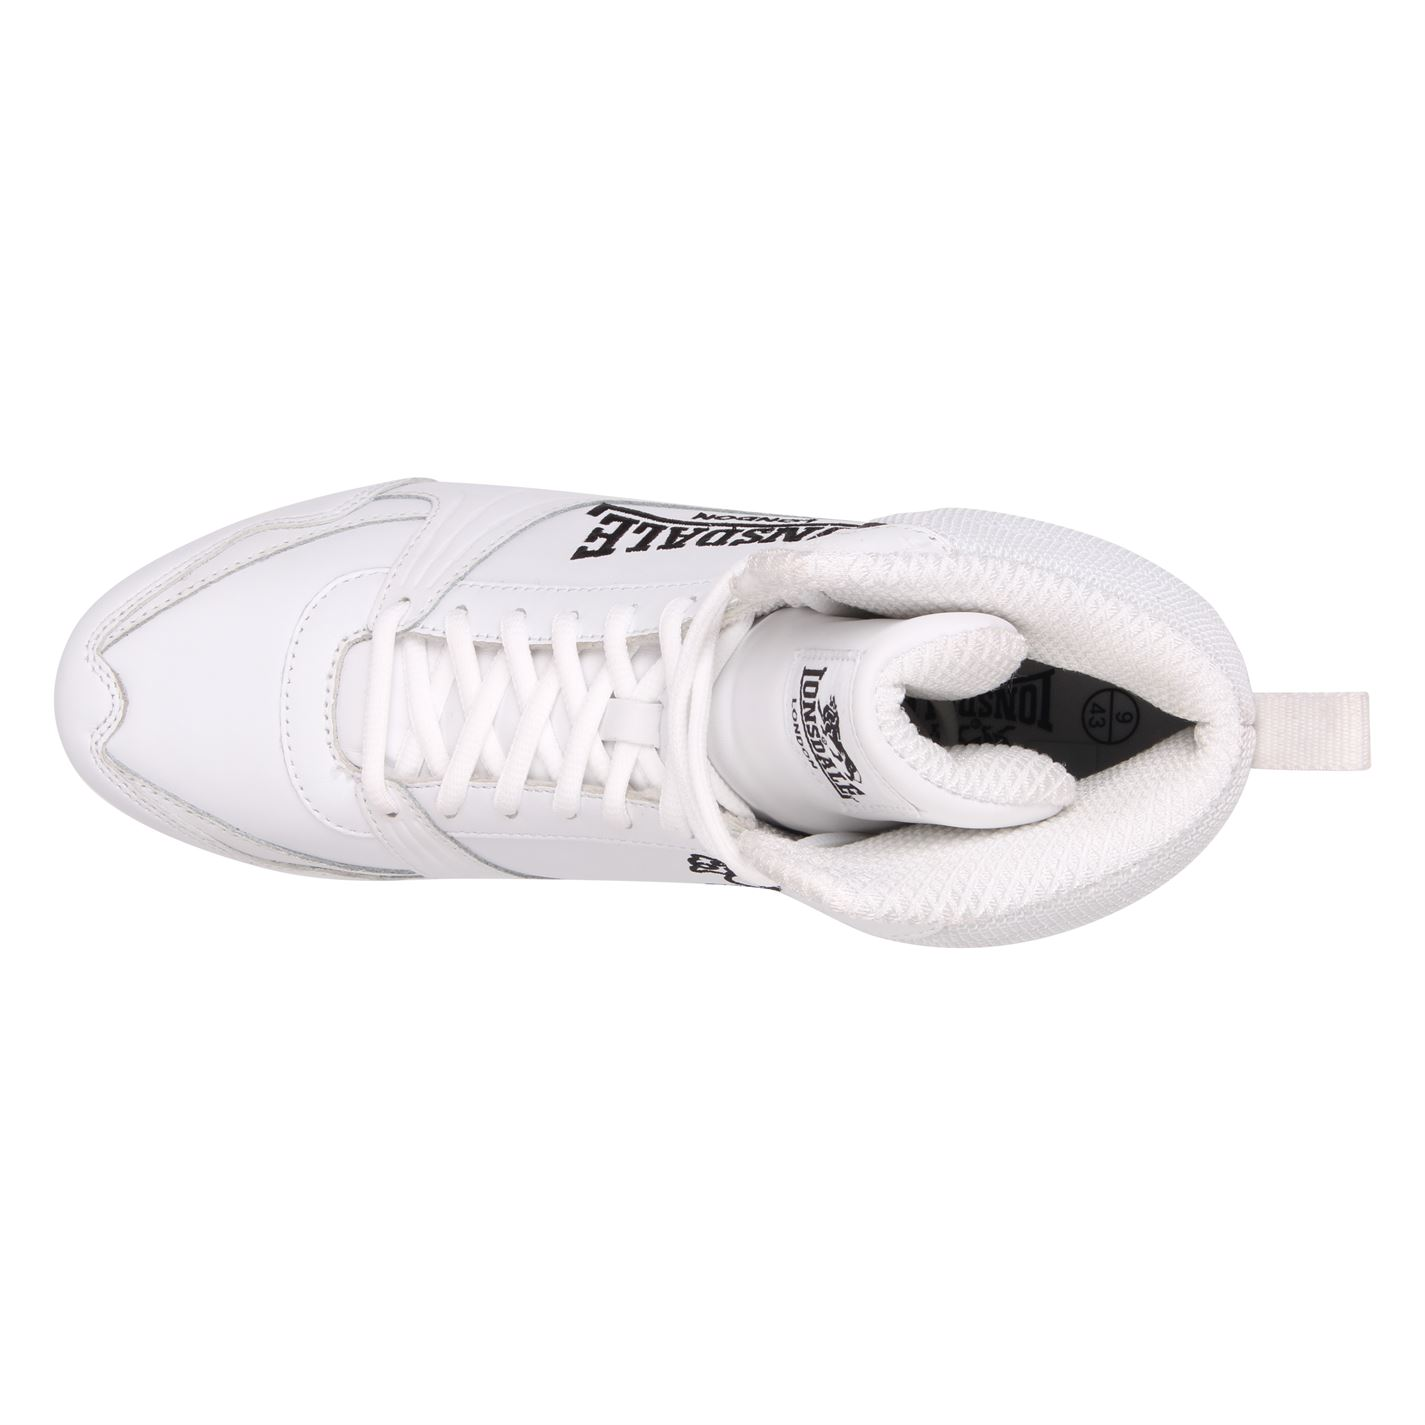 Lonsdale Mens Boxing Boots Training Lace Up Sport Shoes Trainers Footwear